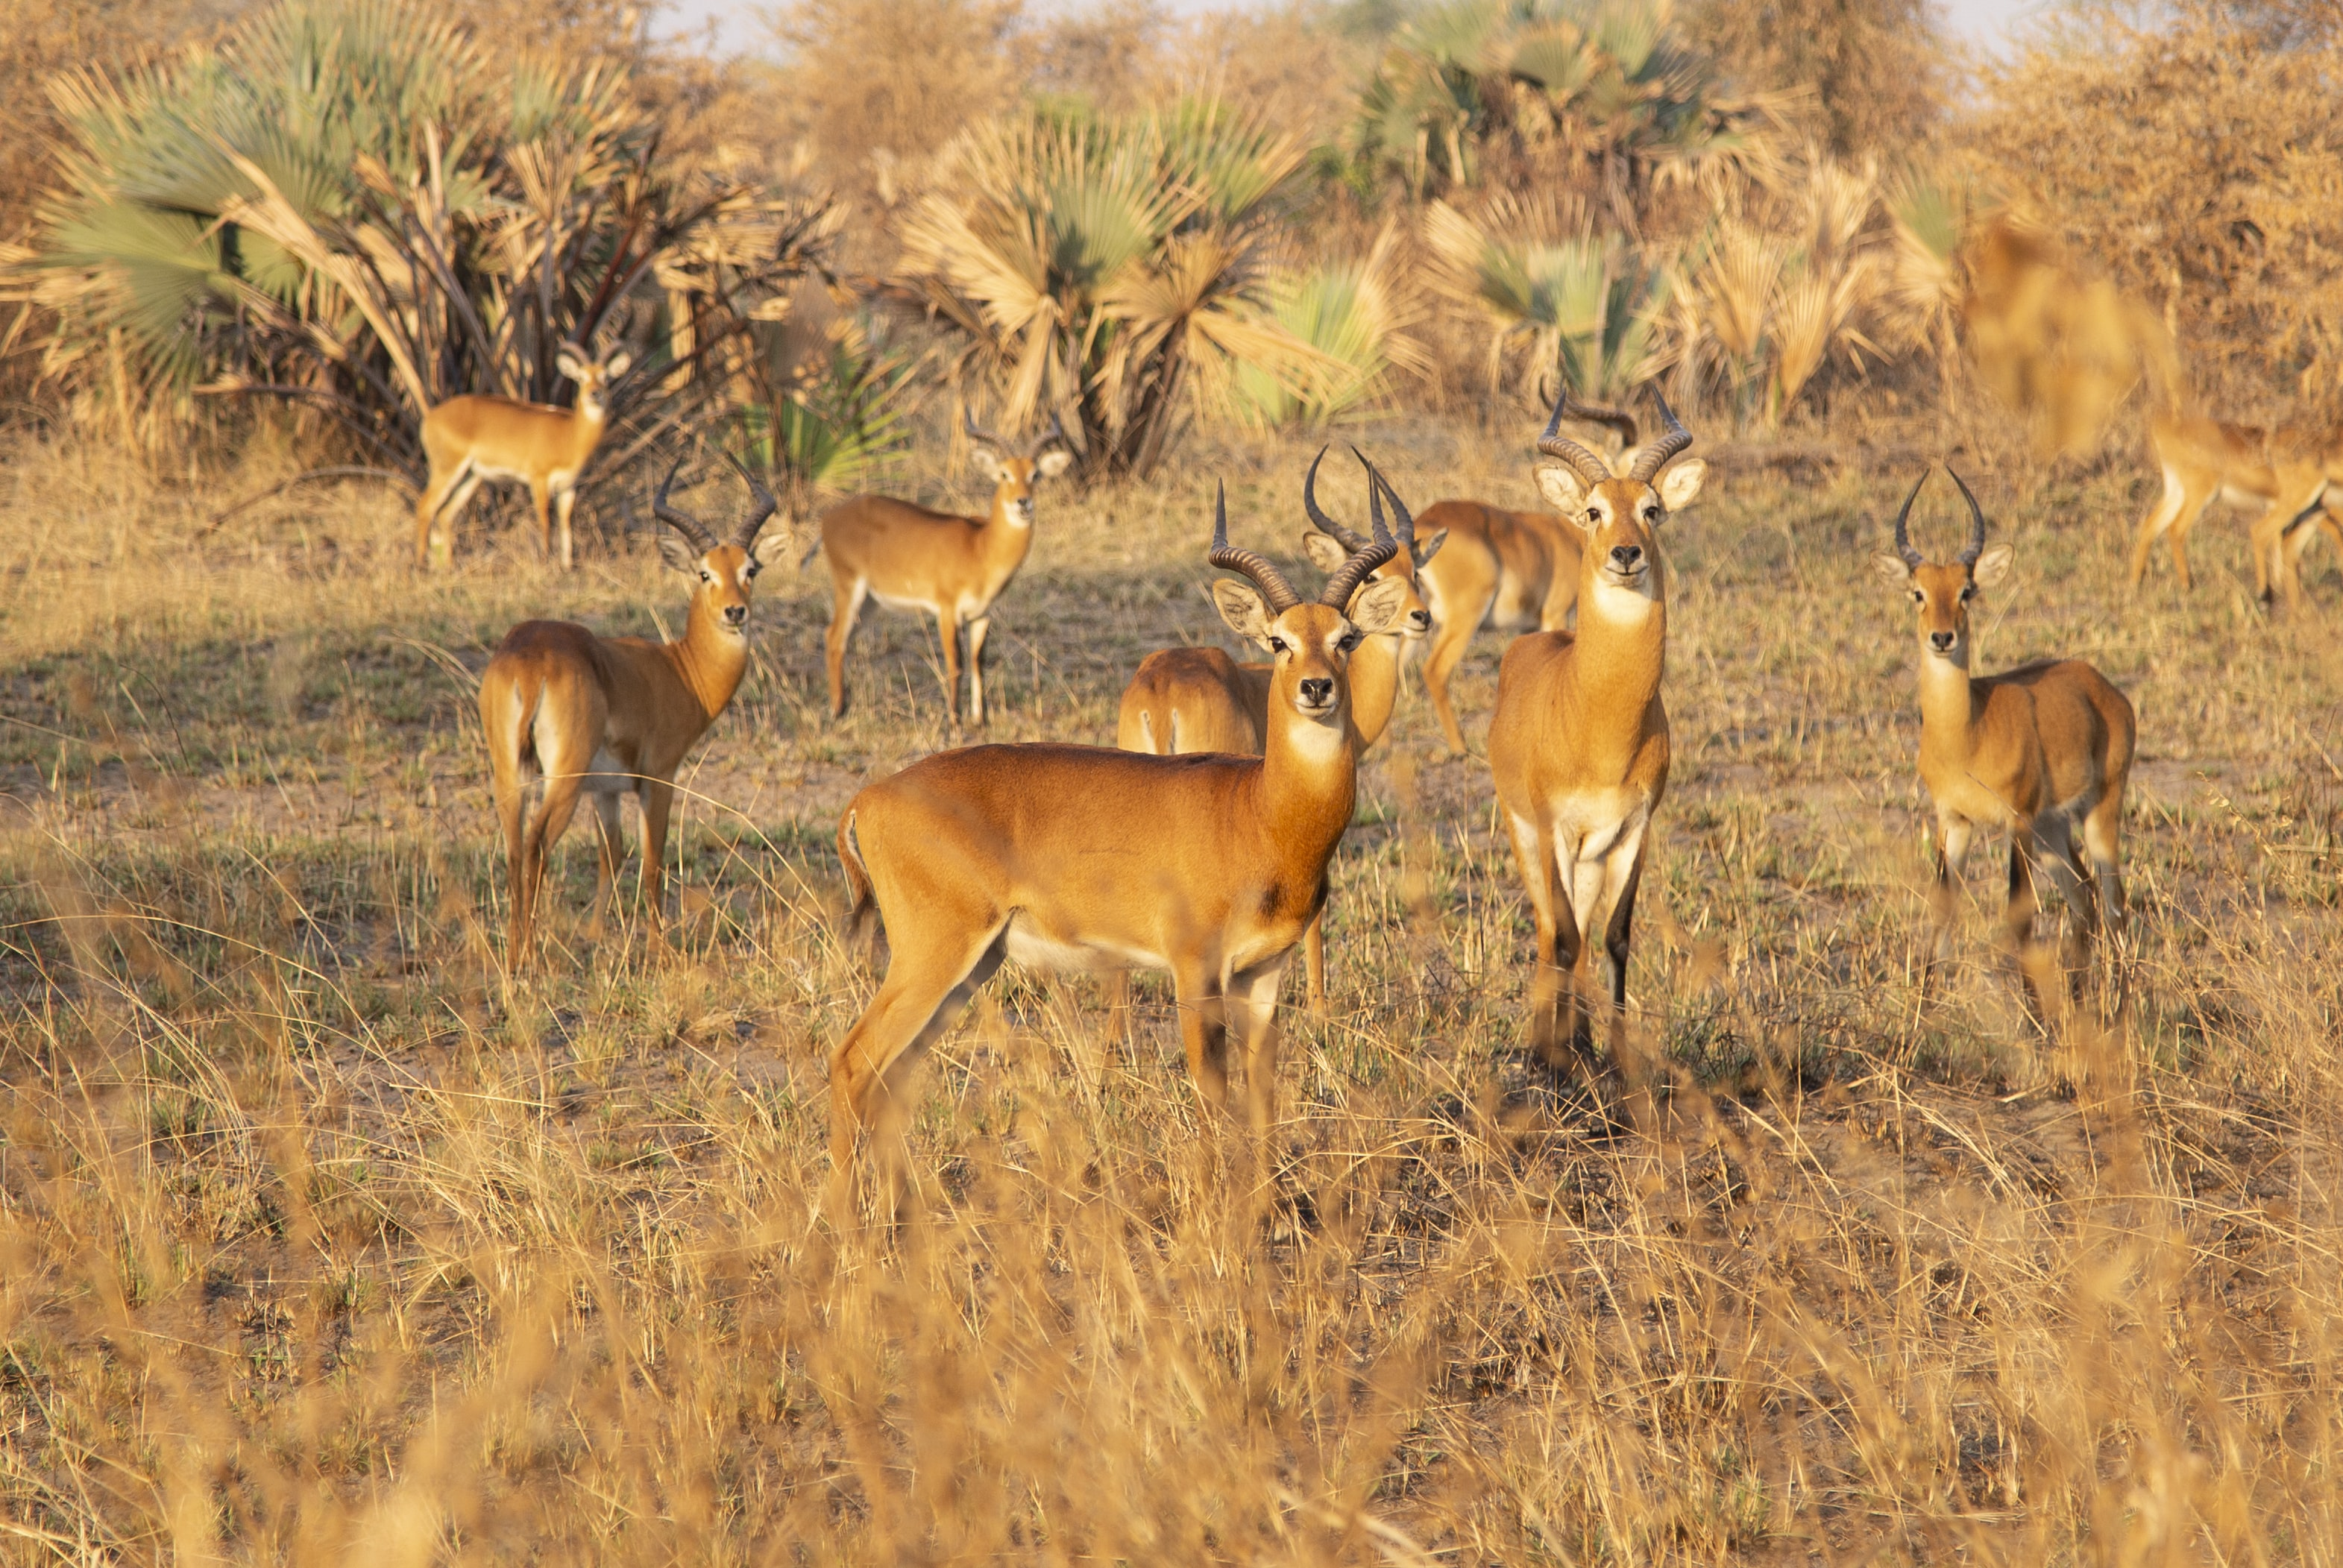 group of antelopes on field during daytime